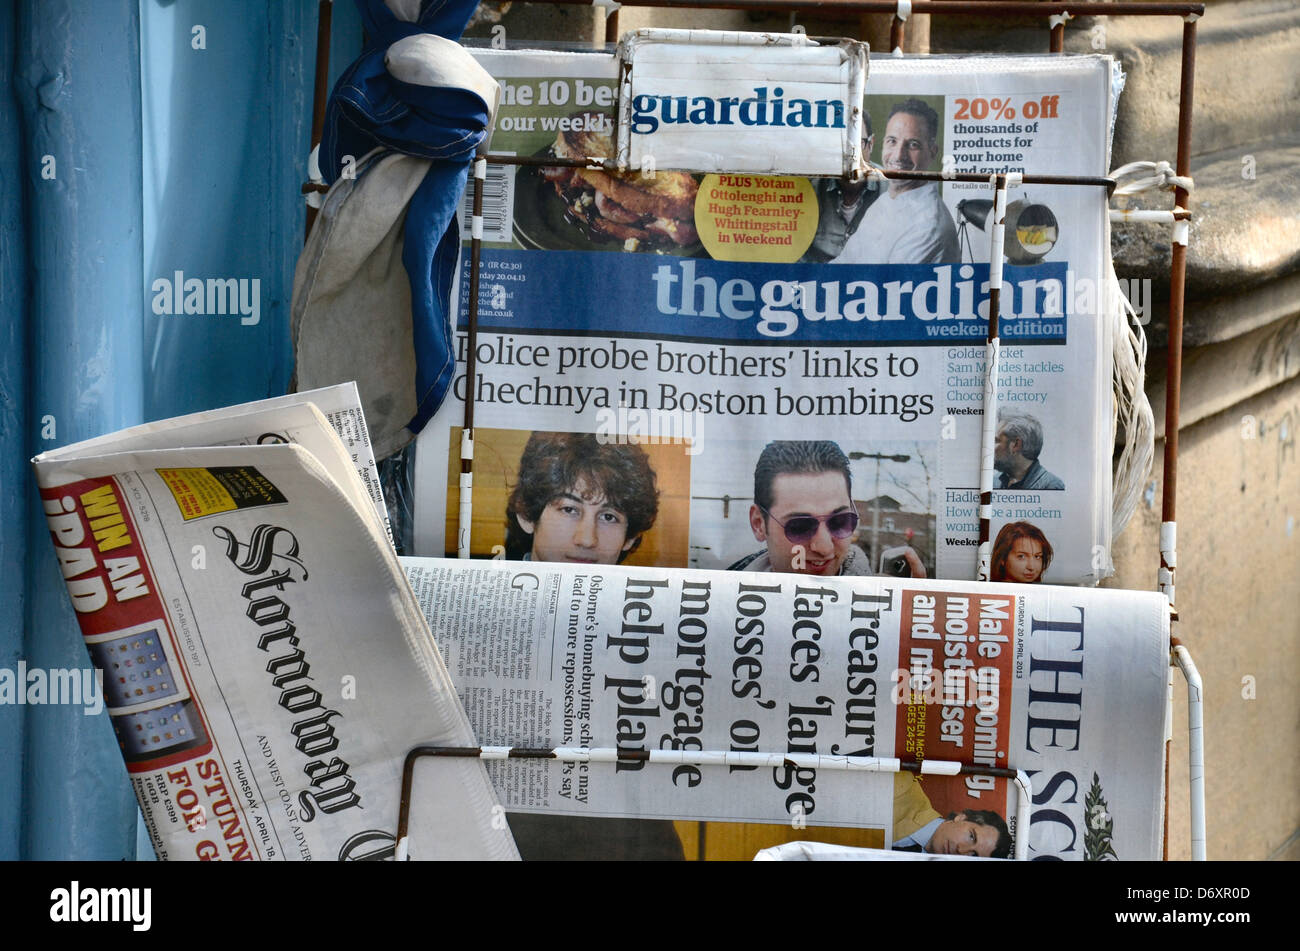 A selection of British newspapers outside a shop in Edinburgh, Scotland, UK. Stock Photo